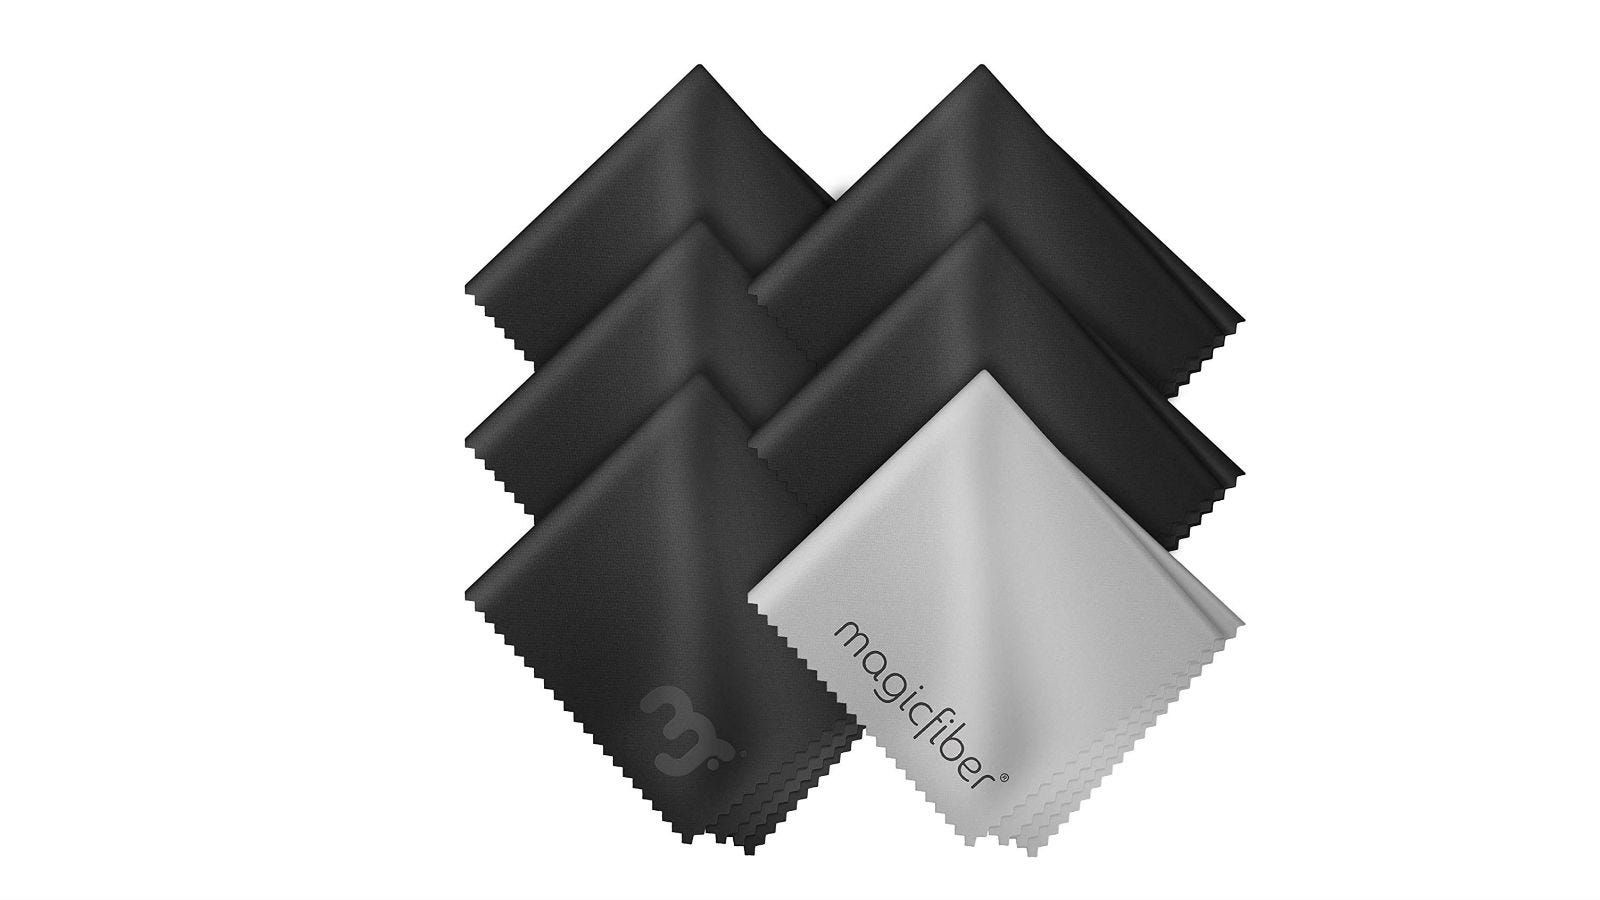 Six MagicFiber Microfiber Cleaning Cloths in black and gray.